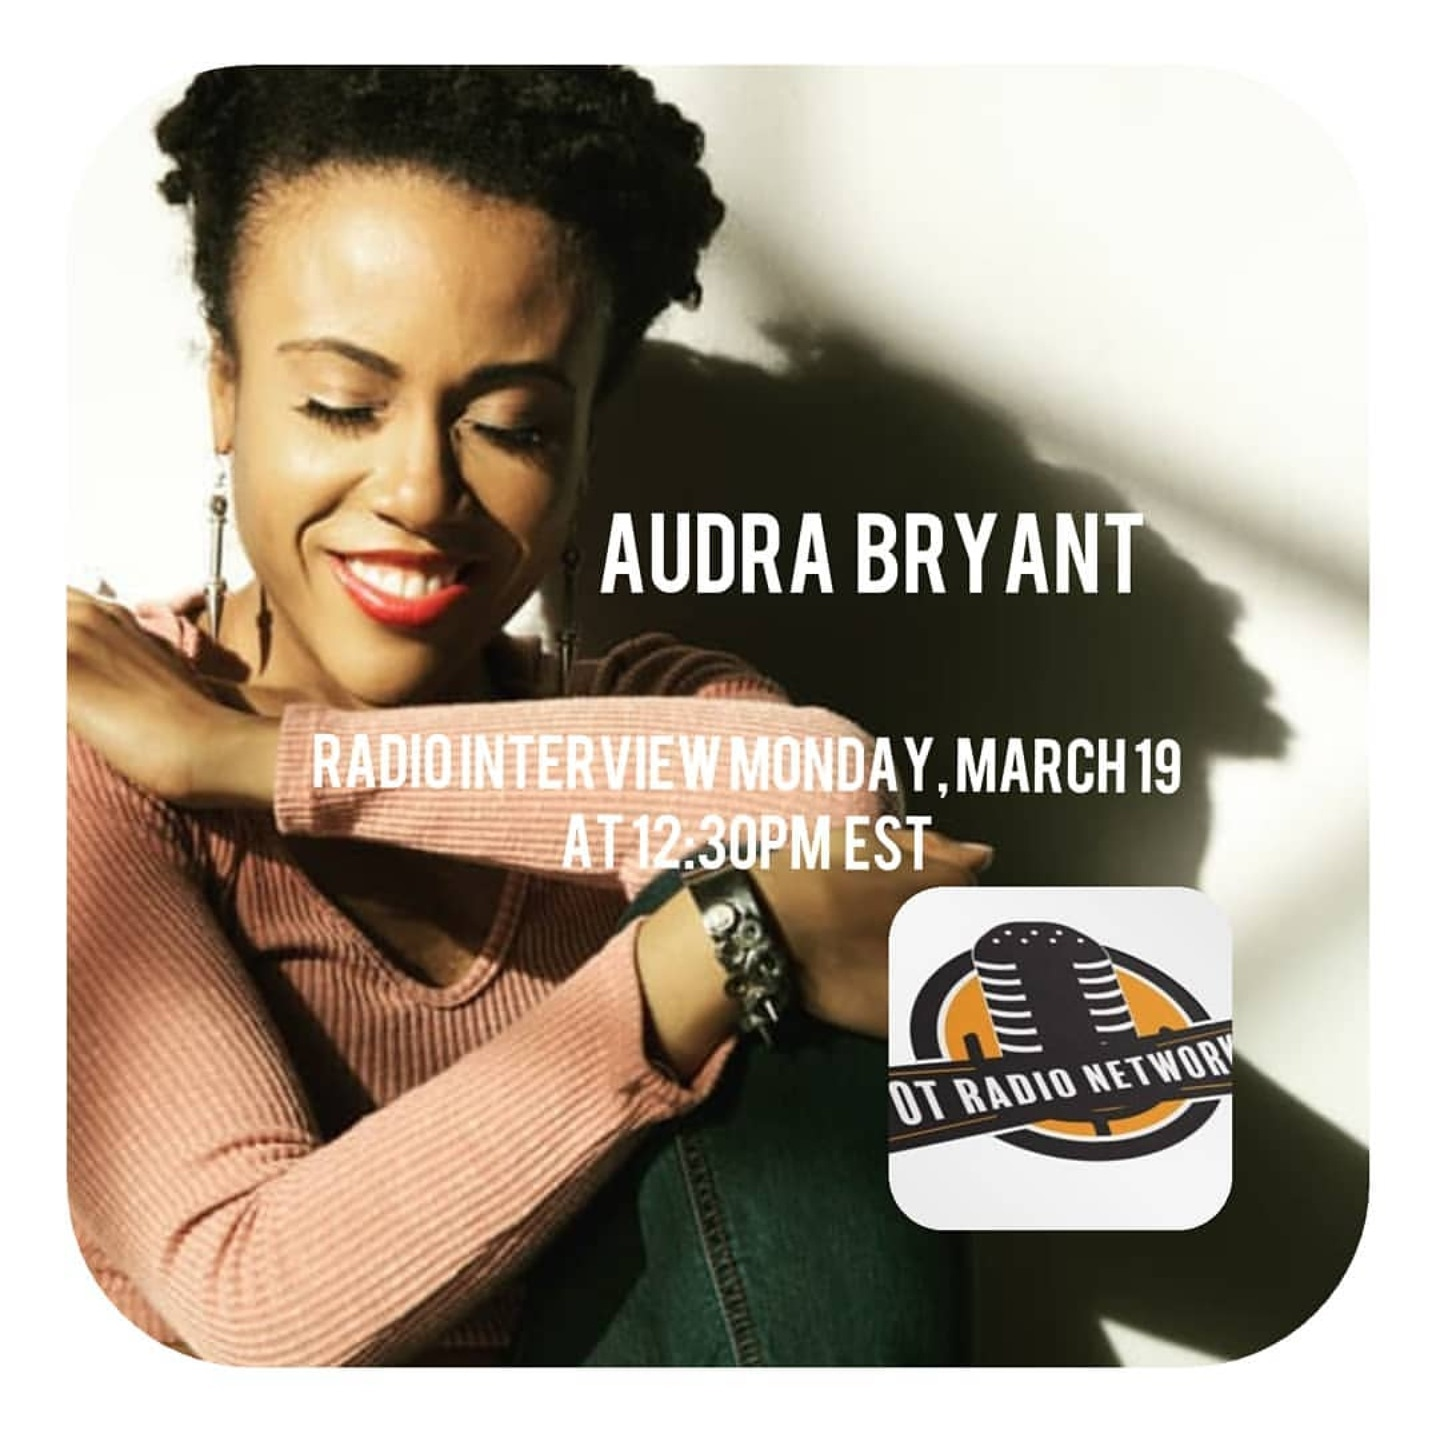 OT Show Radio Network - Interview with Audra Bryant